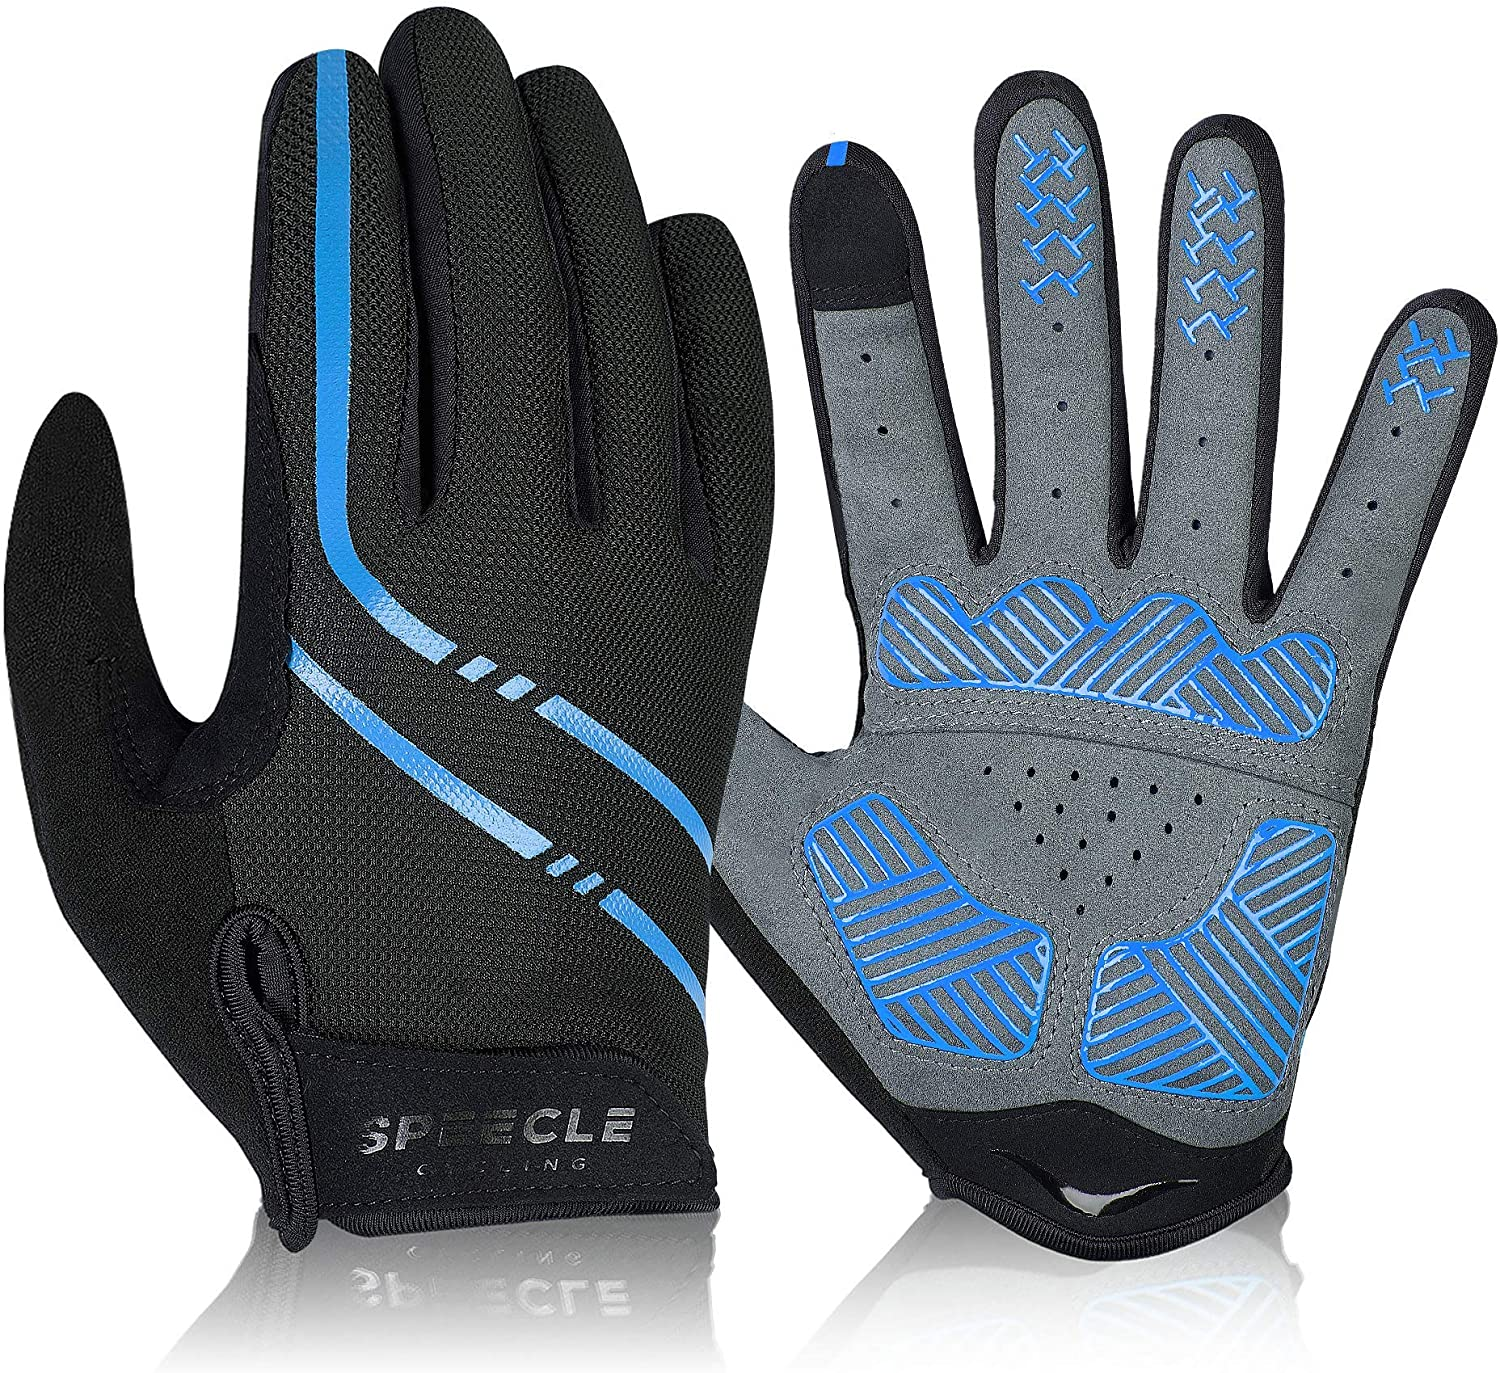 Details about  /Bike Glove Full Finger Cycling Gloves Men Women Shockproof Road Mountain Bicycle